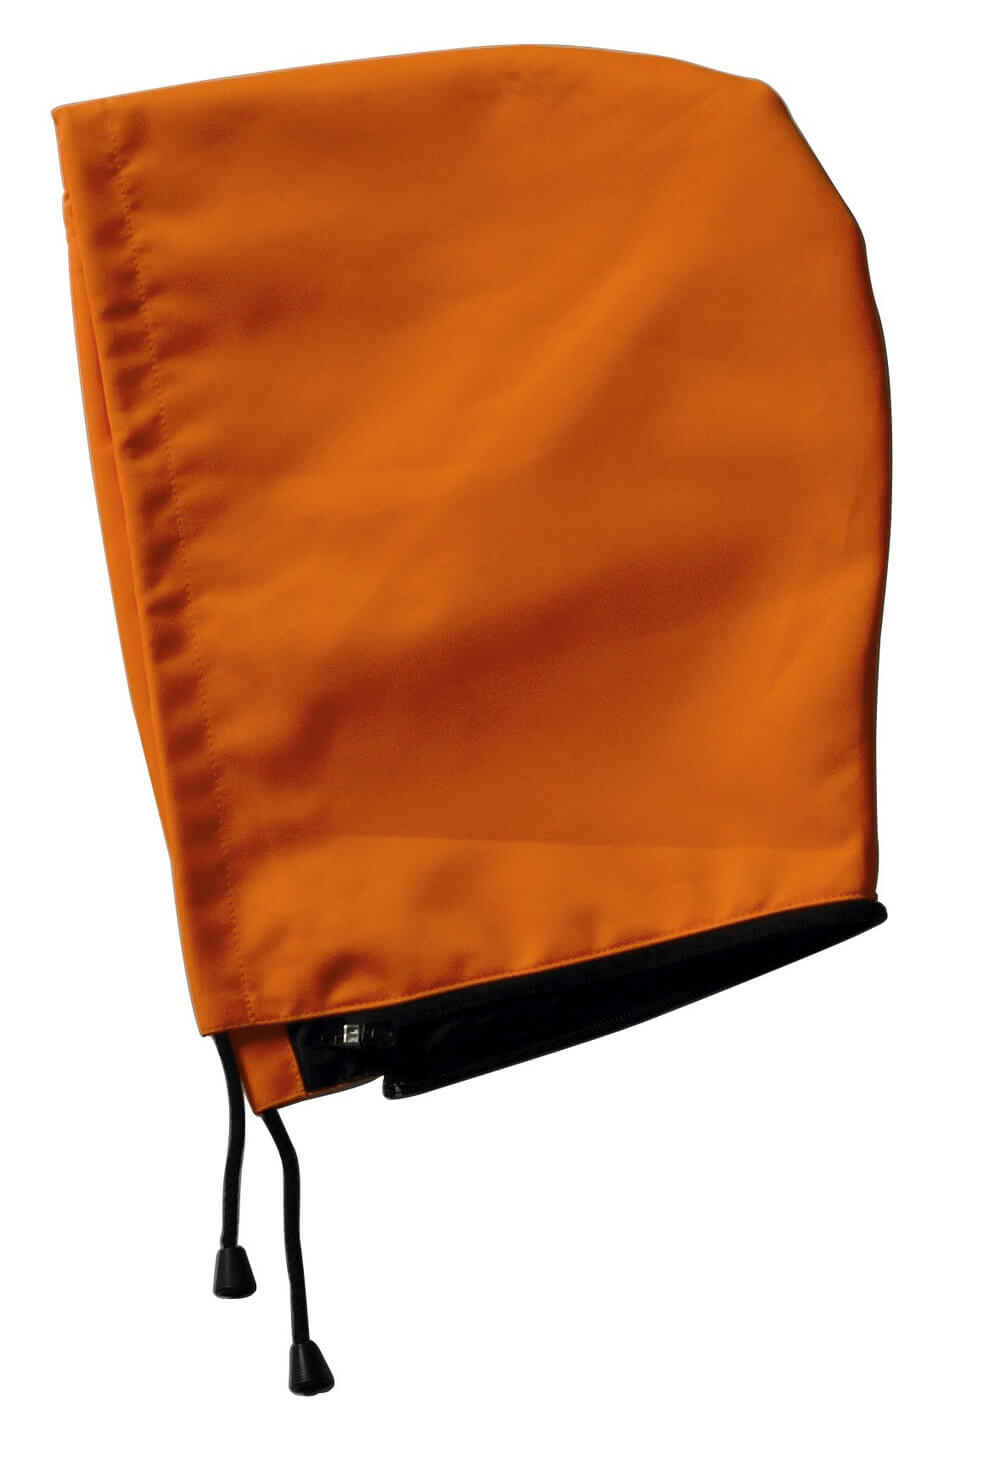 07014-880-14 Hood - hi-vis orange